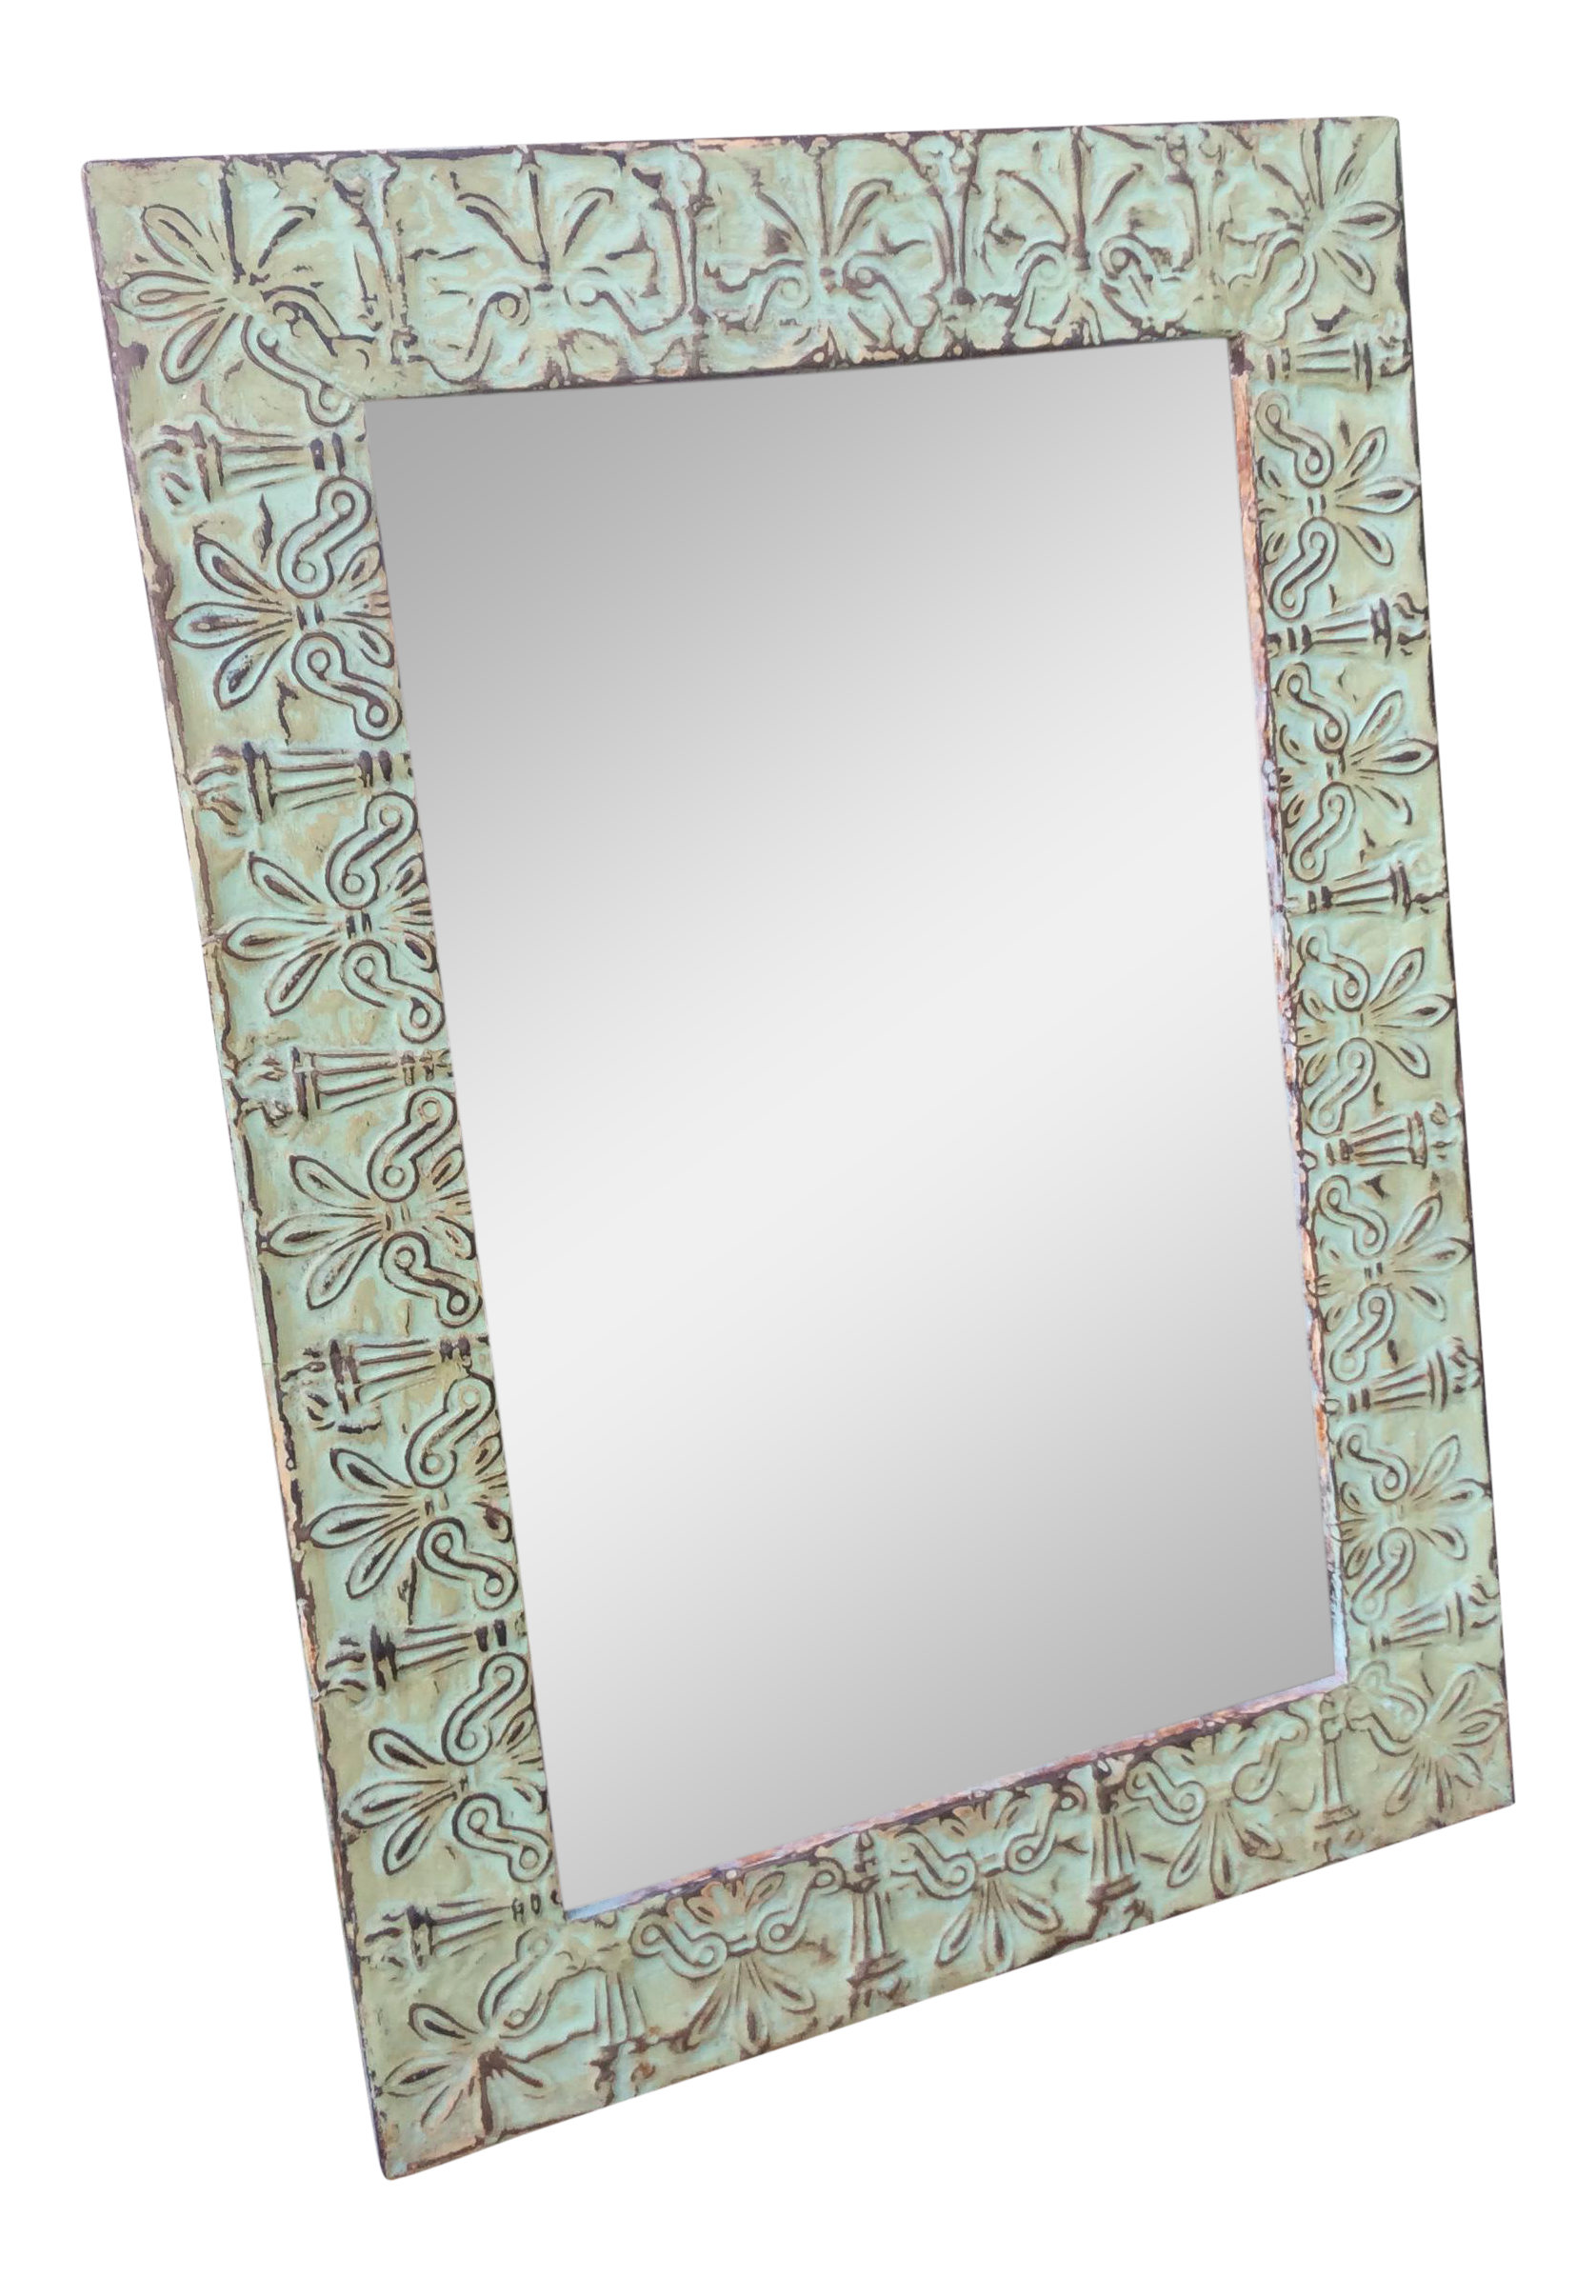 Antique green ceiling tile mirror chairish dailygadgetfo Image collections